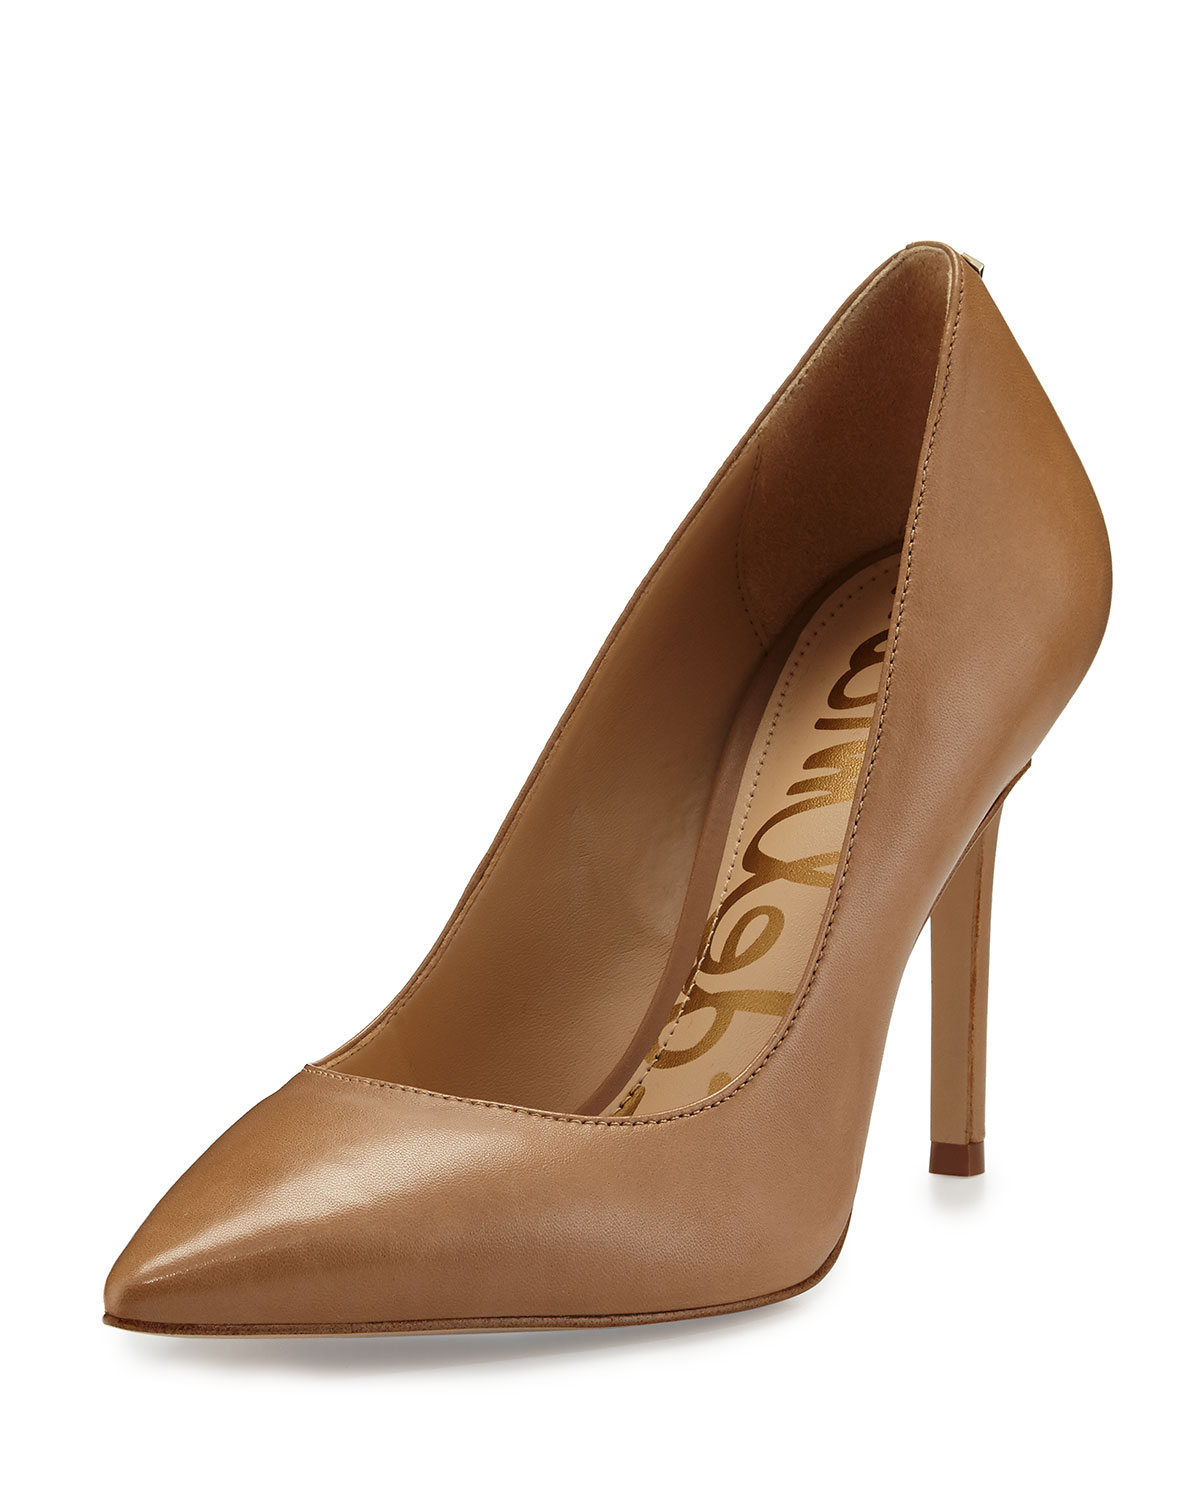 ff695421e Sam Edelman Hazel Pointed-Toe Leather Pump